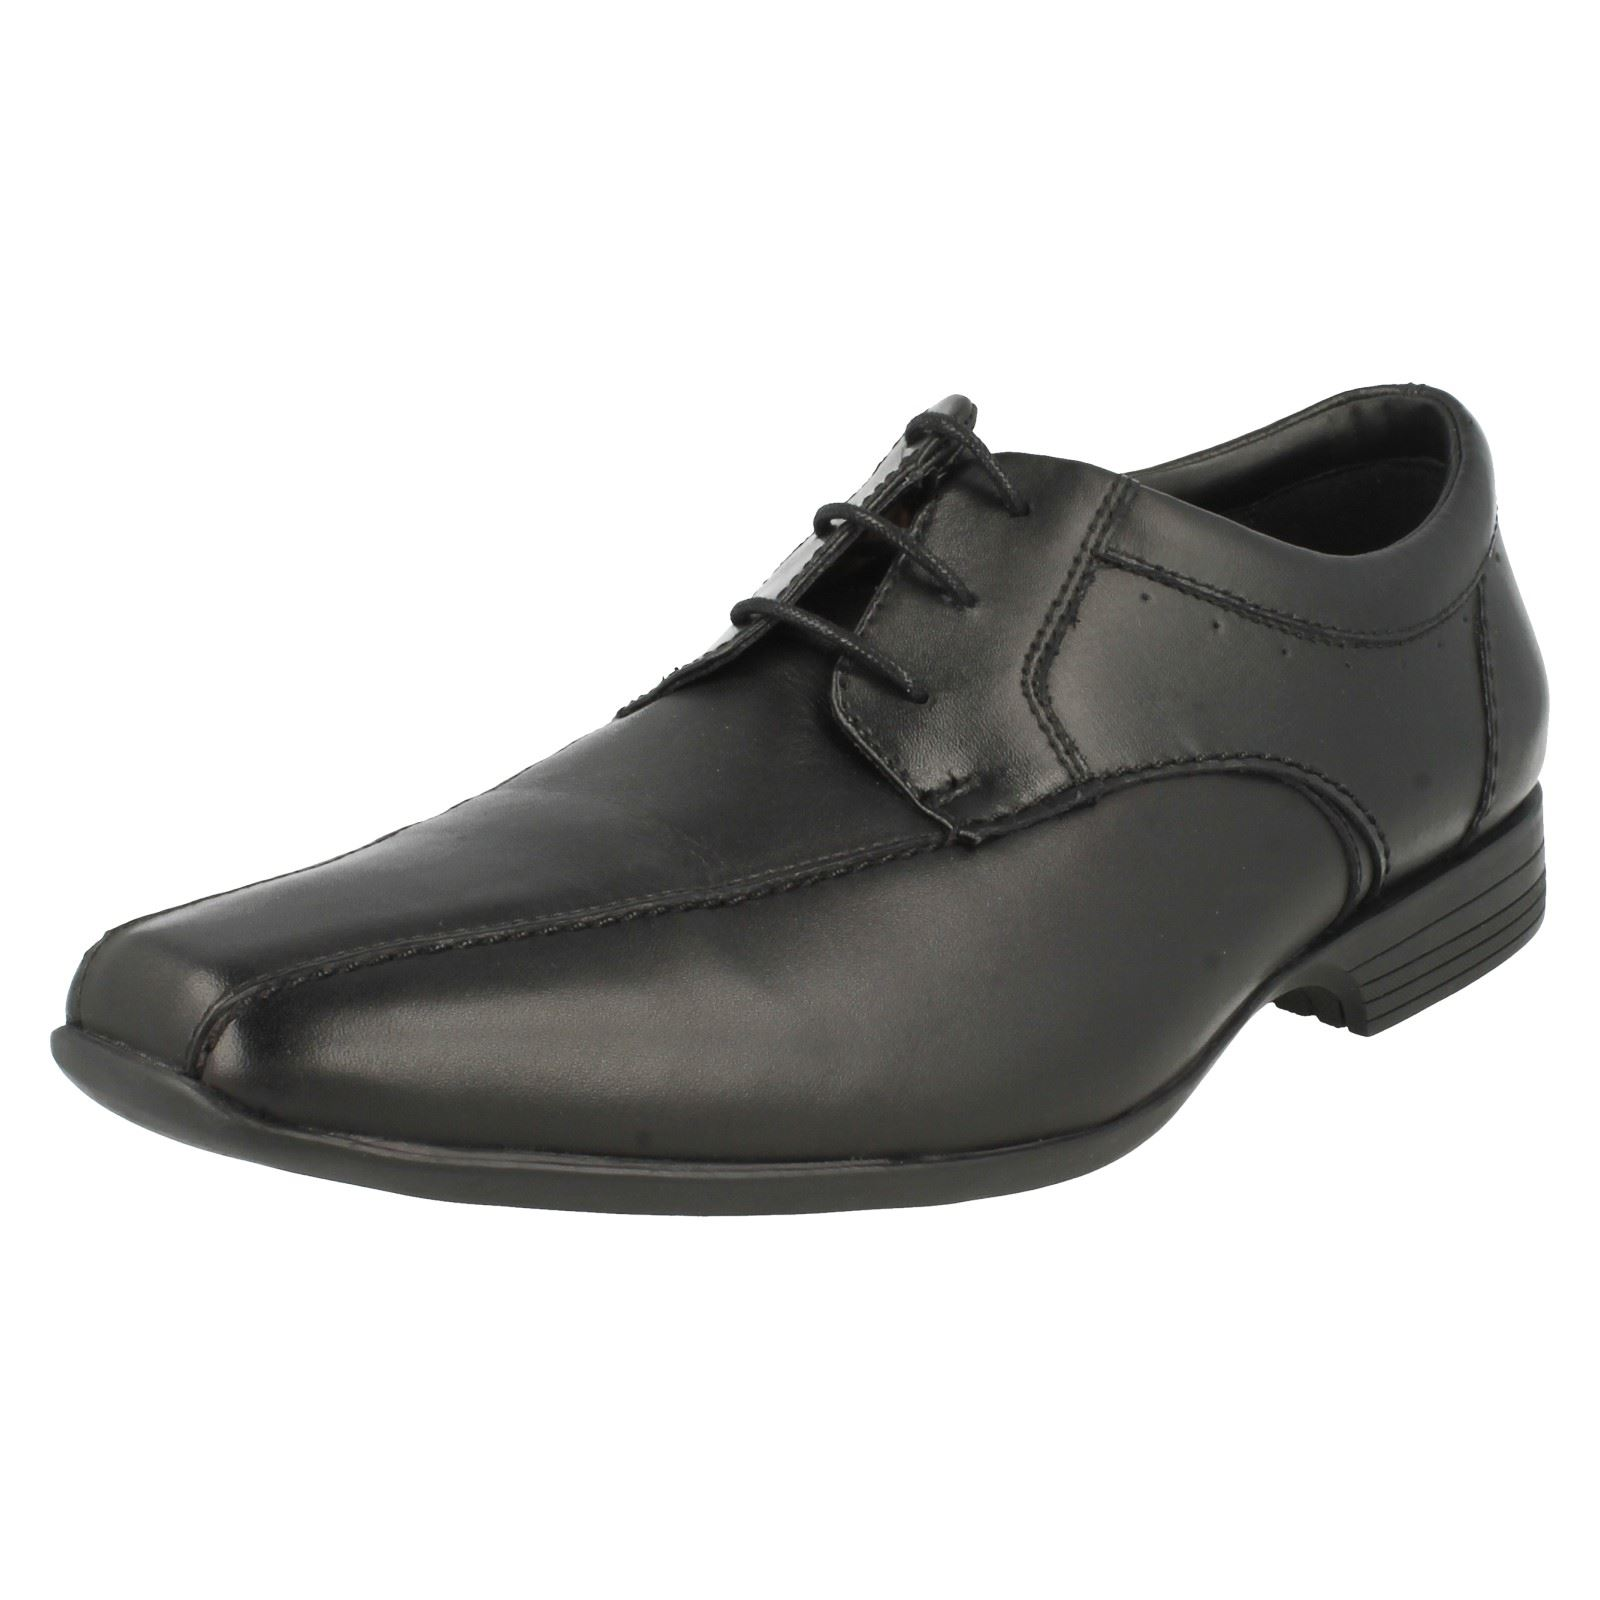 Over Shoes Formal forbes Clarks Mens Black qaIzBWw